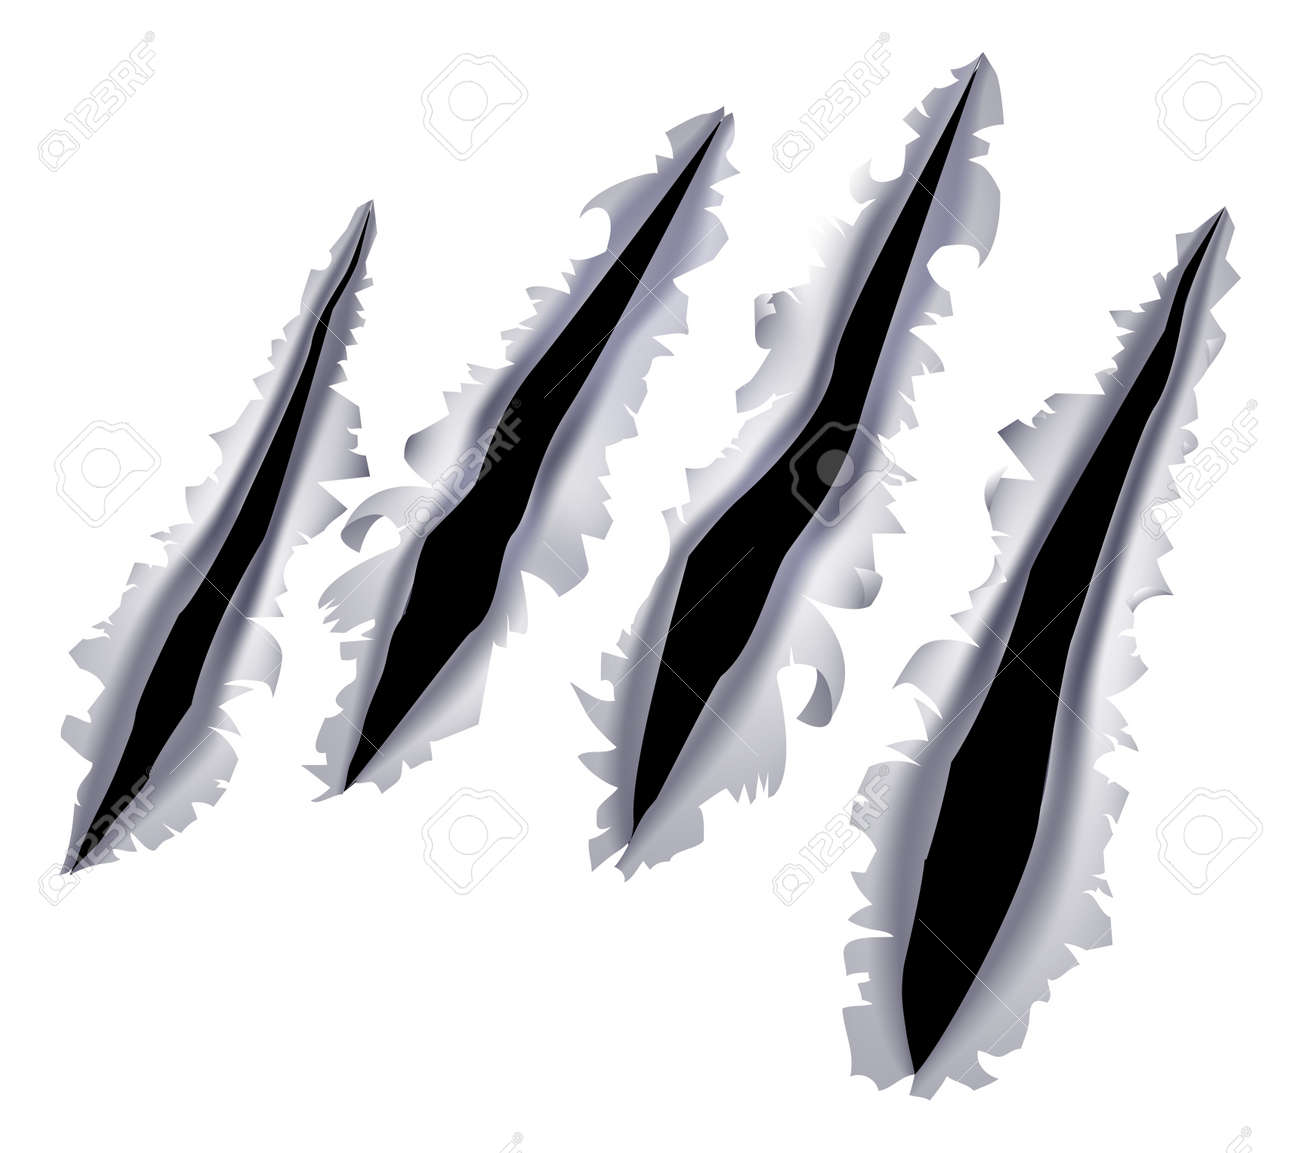 hight resolution of an illustration of a monster claw or hand scratch or rip through a metal background stock